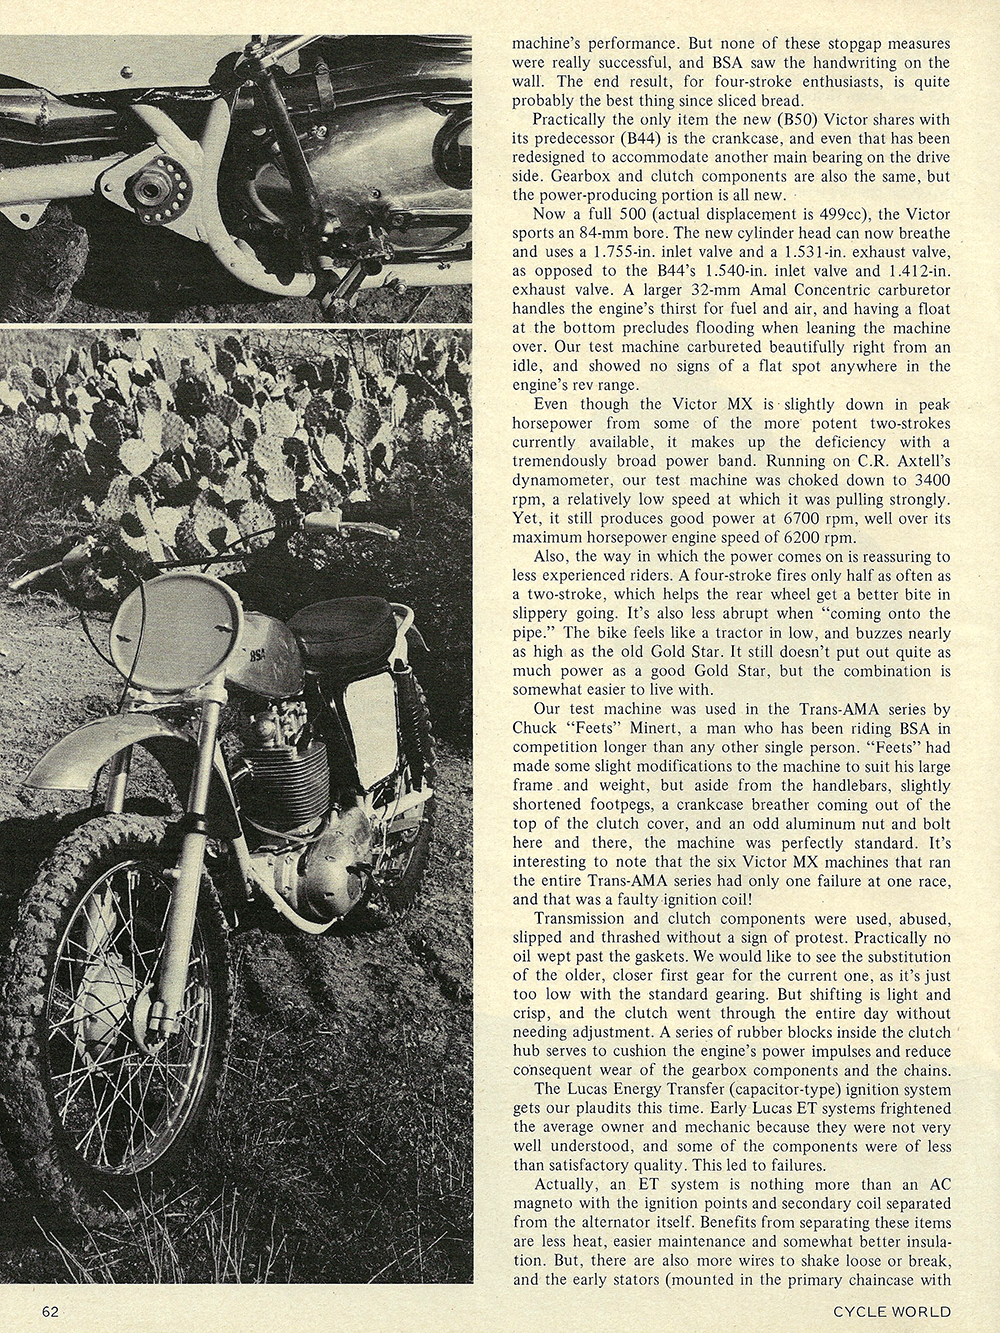 1971 BSA Victor MX road test 03.jpg